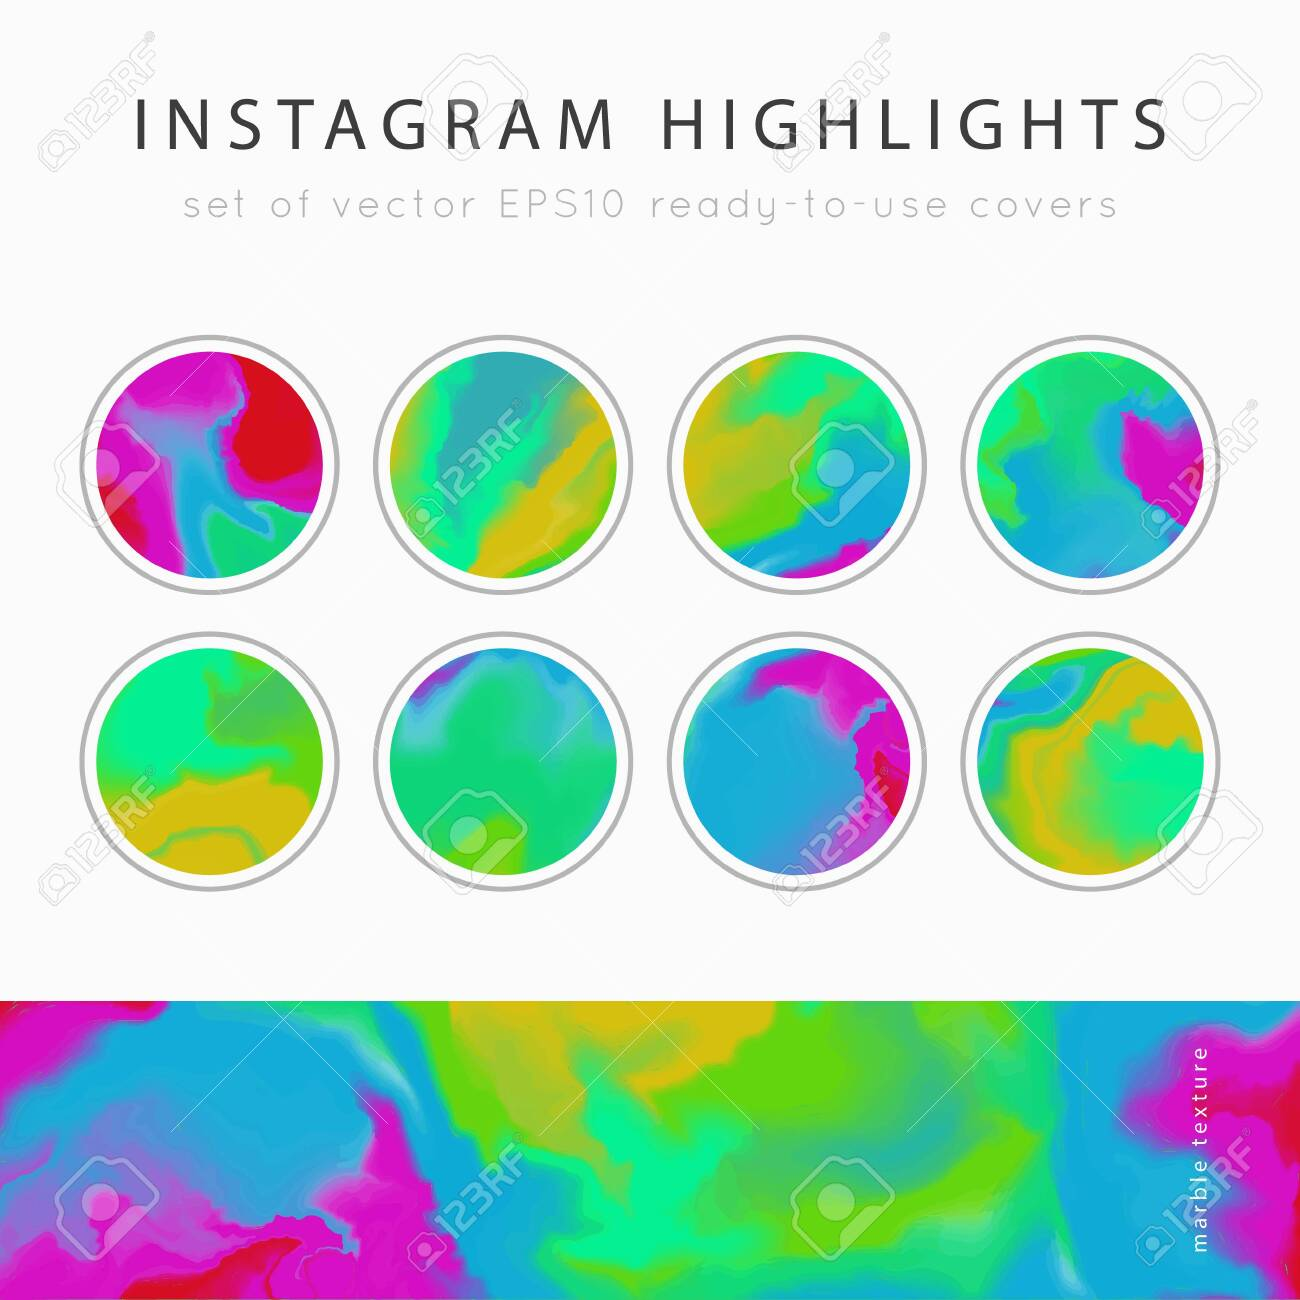 Instagram Highlight Covers Background Templates Set Of Marble Royalty Free Cliparts Vectors And Stock Illustration Image 136819681